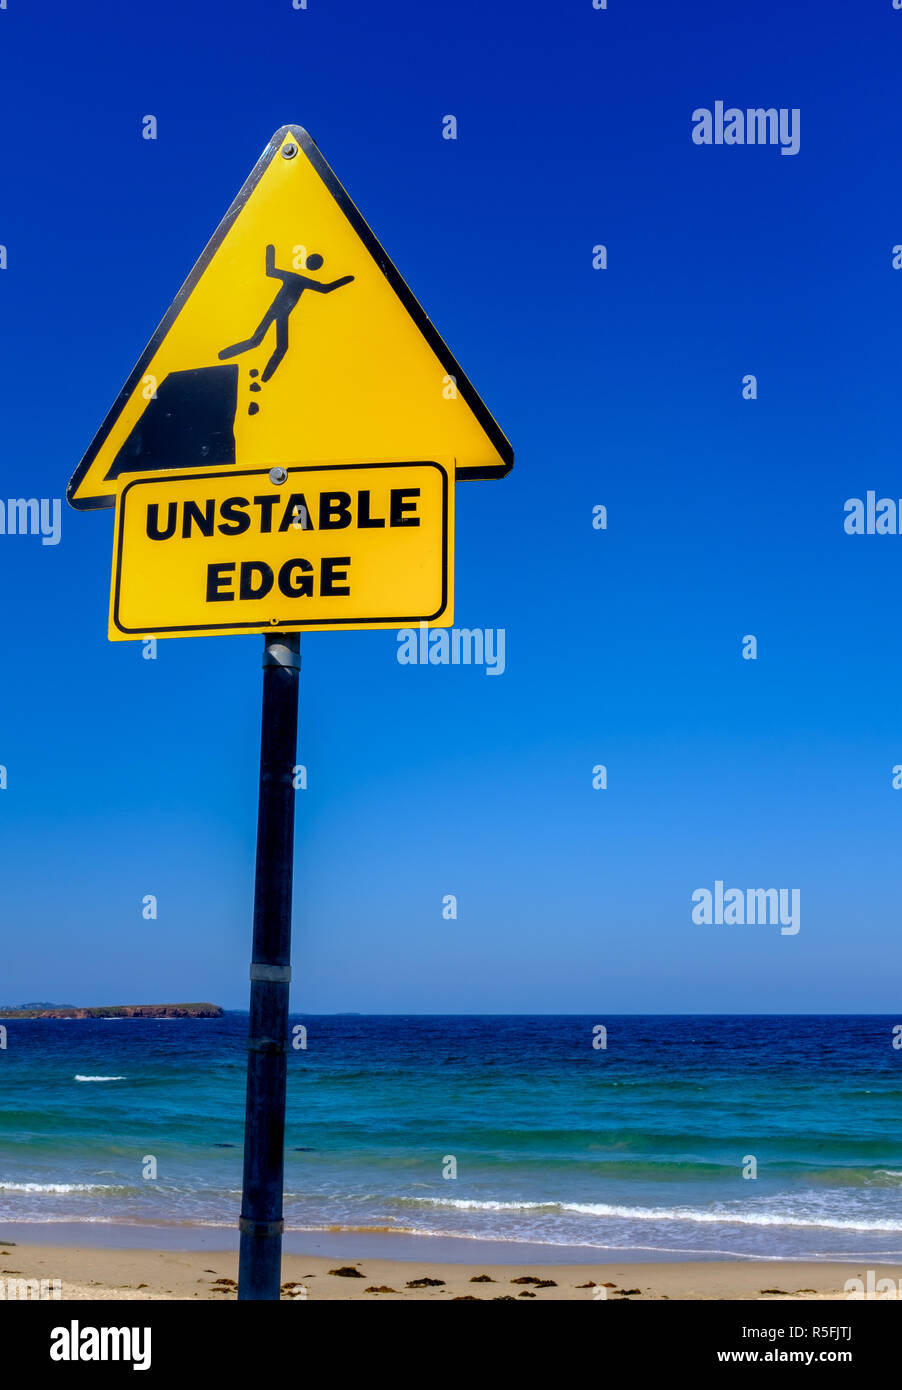 Unstable edge sign overlooking sea, person falling off cliff, Australian signs - Stock Image